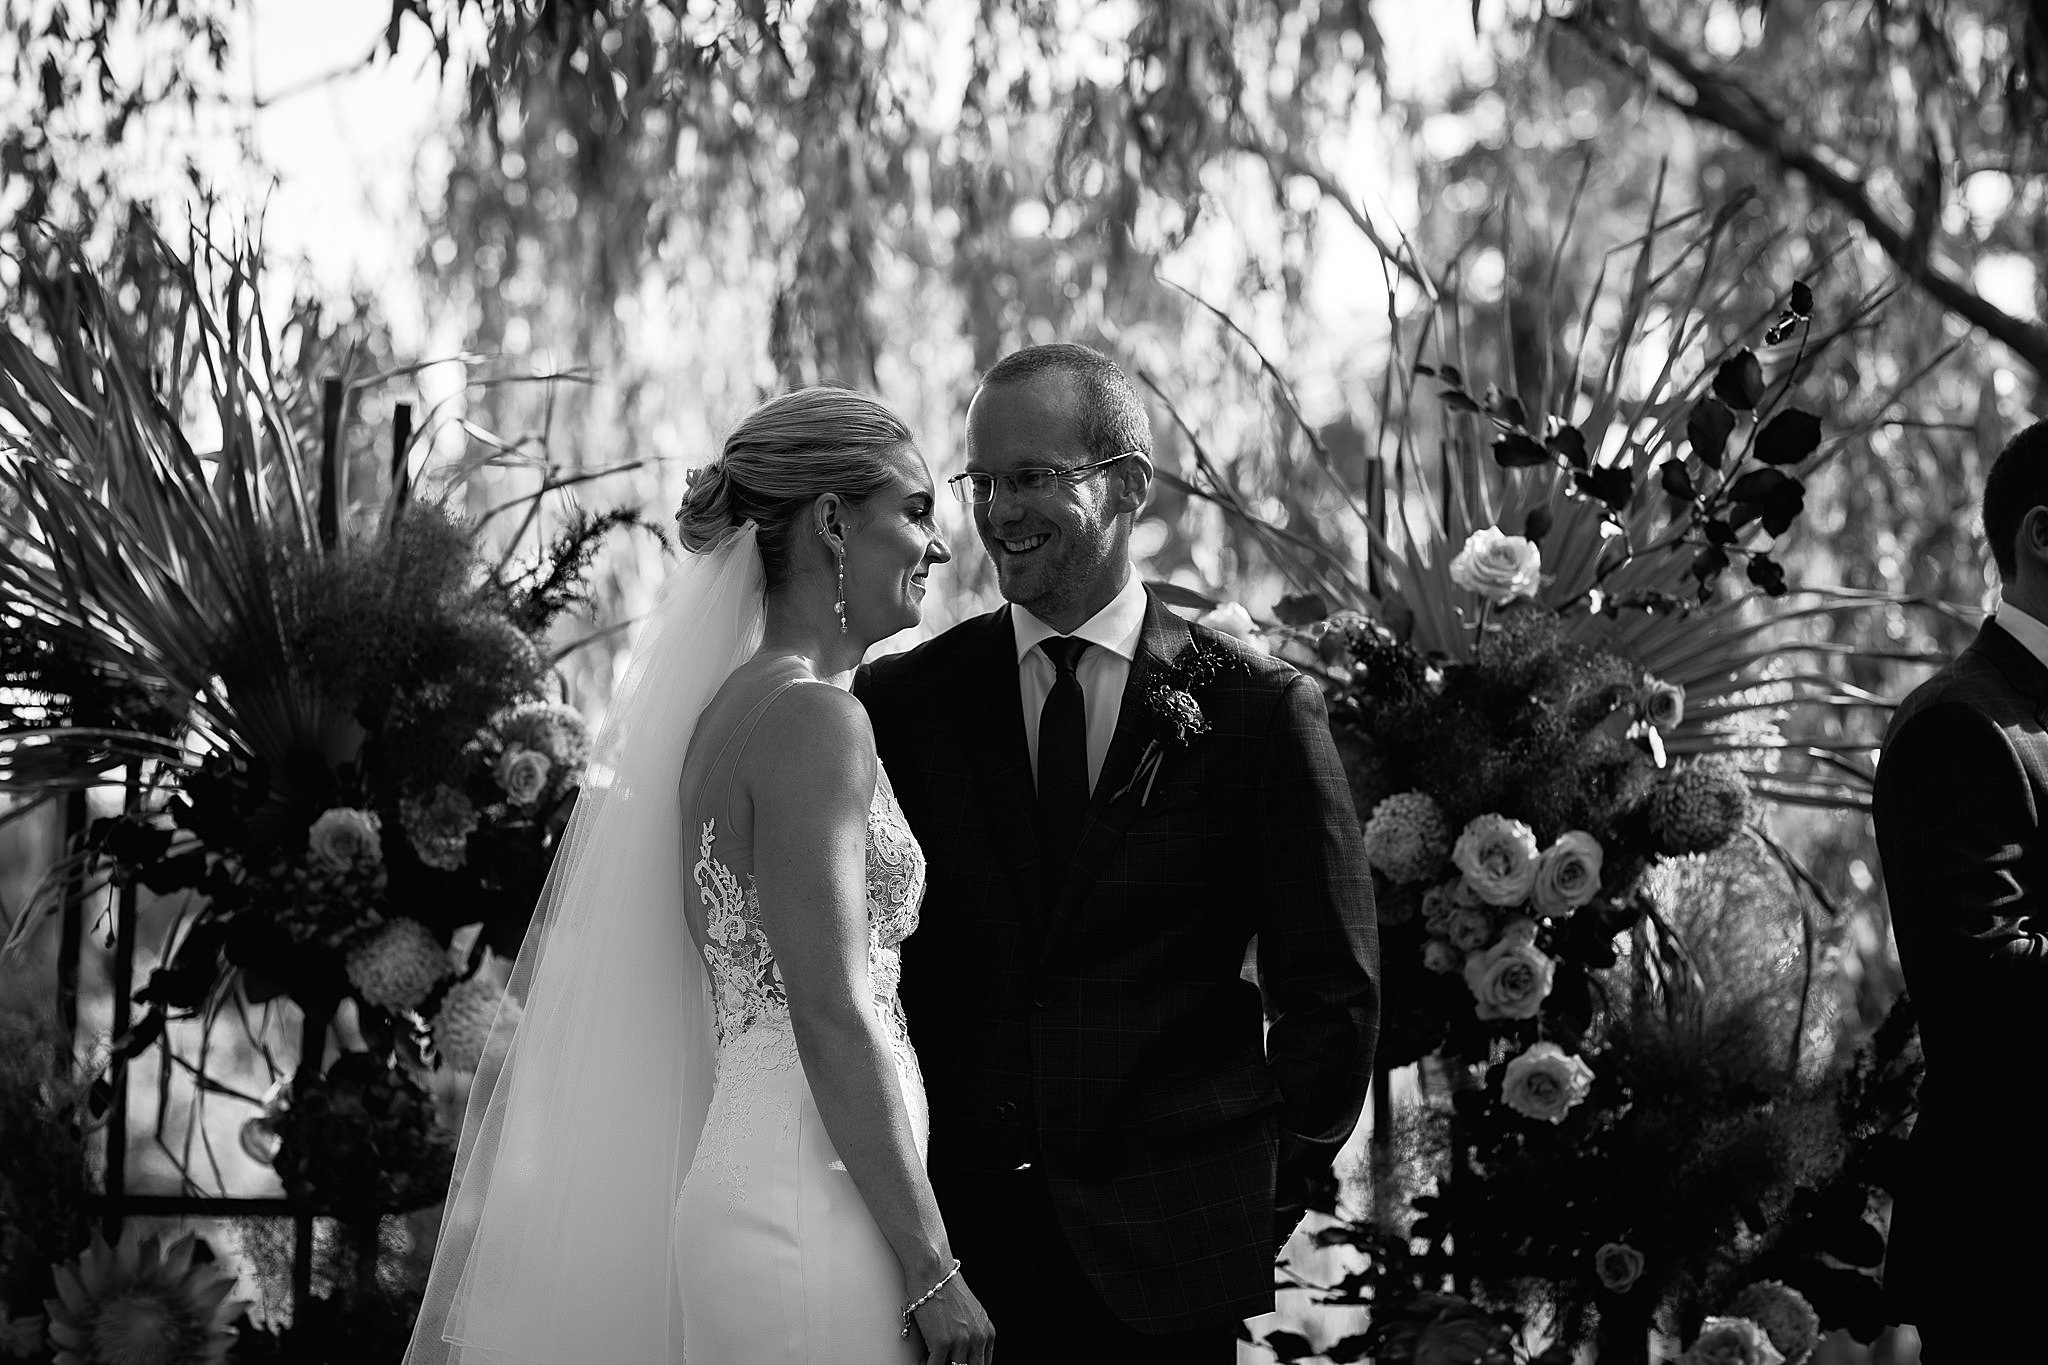 country wedding,Keepsakephoto by the Keeffes,ACT wedding photographer,ACT weddings,Bowral Wedding Photographer,Canberra Wedding Photographer,Canberra Wedding Photography,canberra weddings,Gundaroo,Grazing,Grazing at Gundaroo,Laurel and Lace,canberra florist,